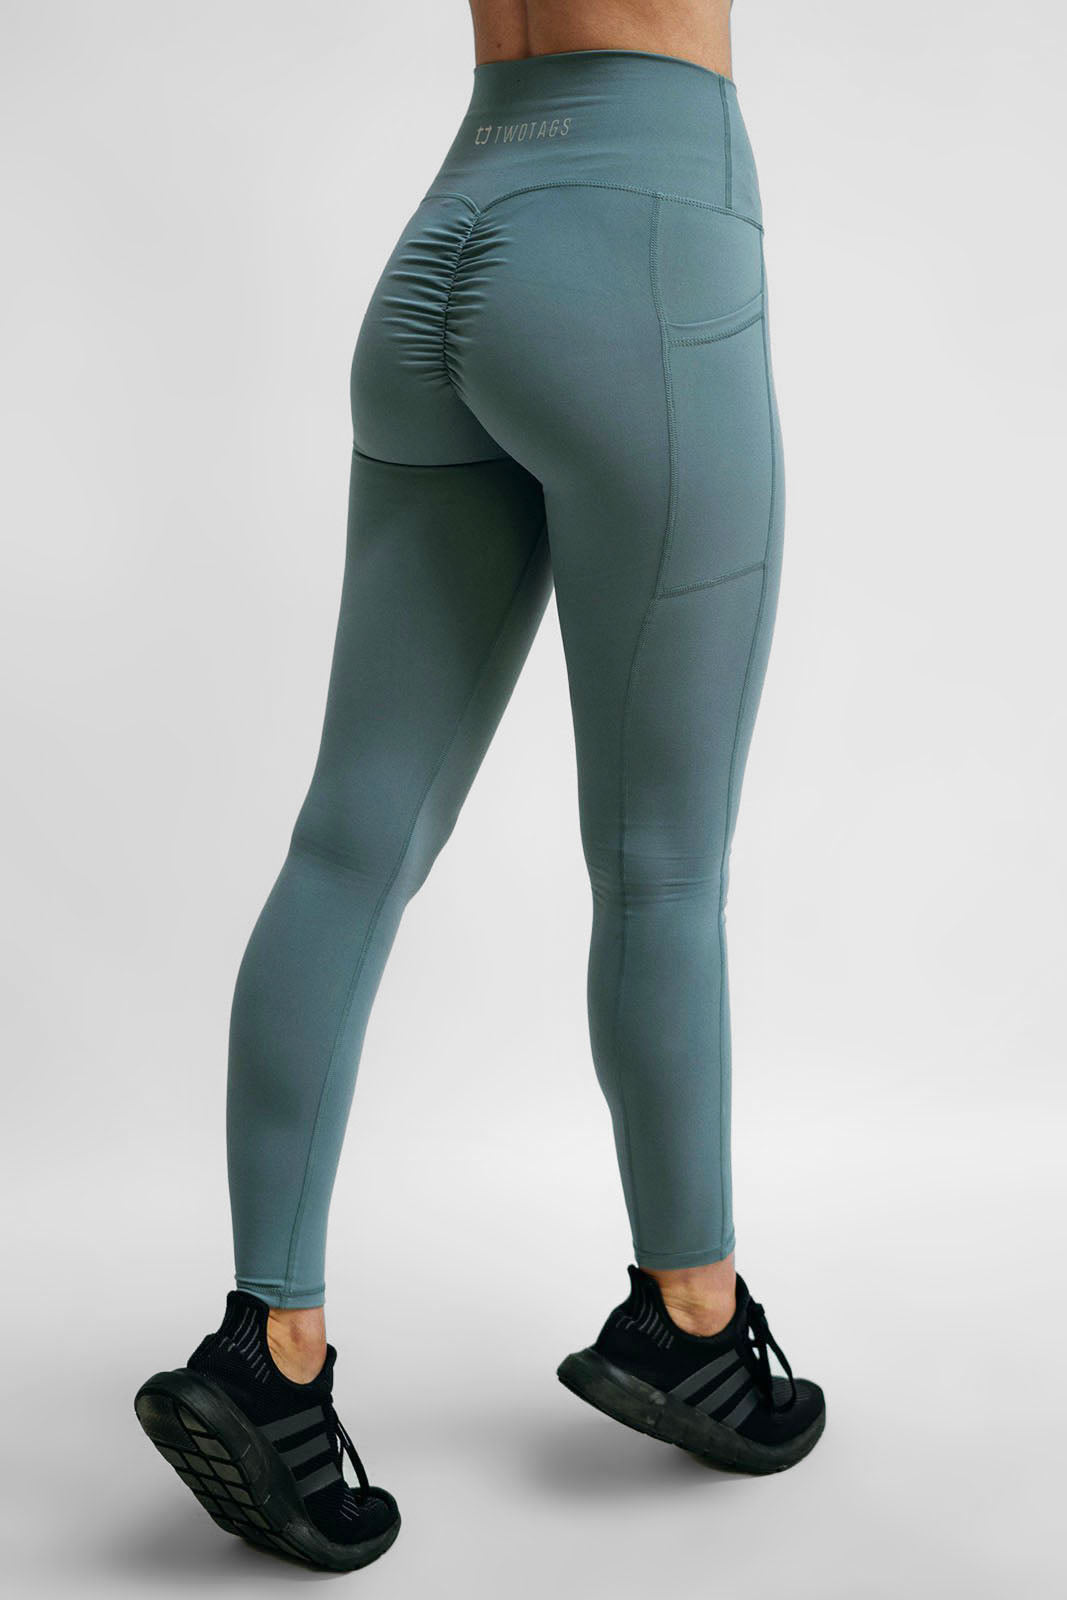 69eefe83ae404 Scrunch Highwaisted Leggings - Teal – Twotags